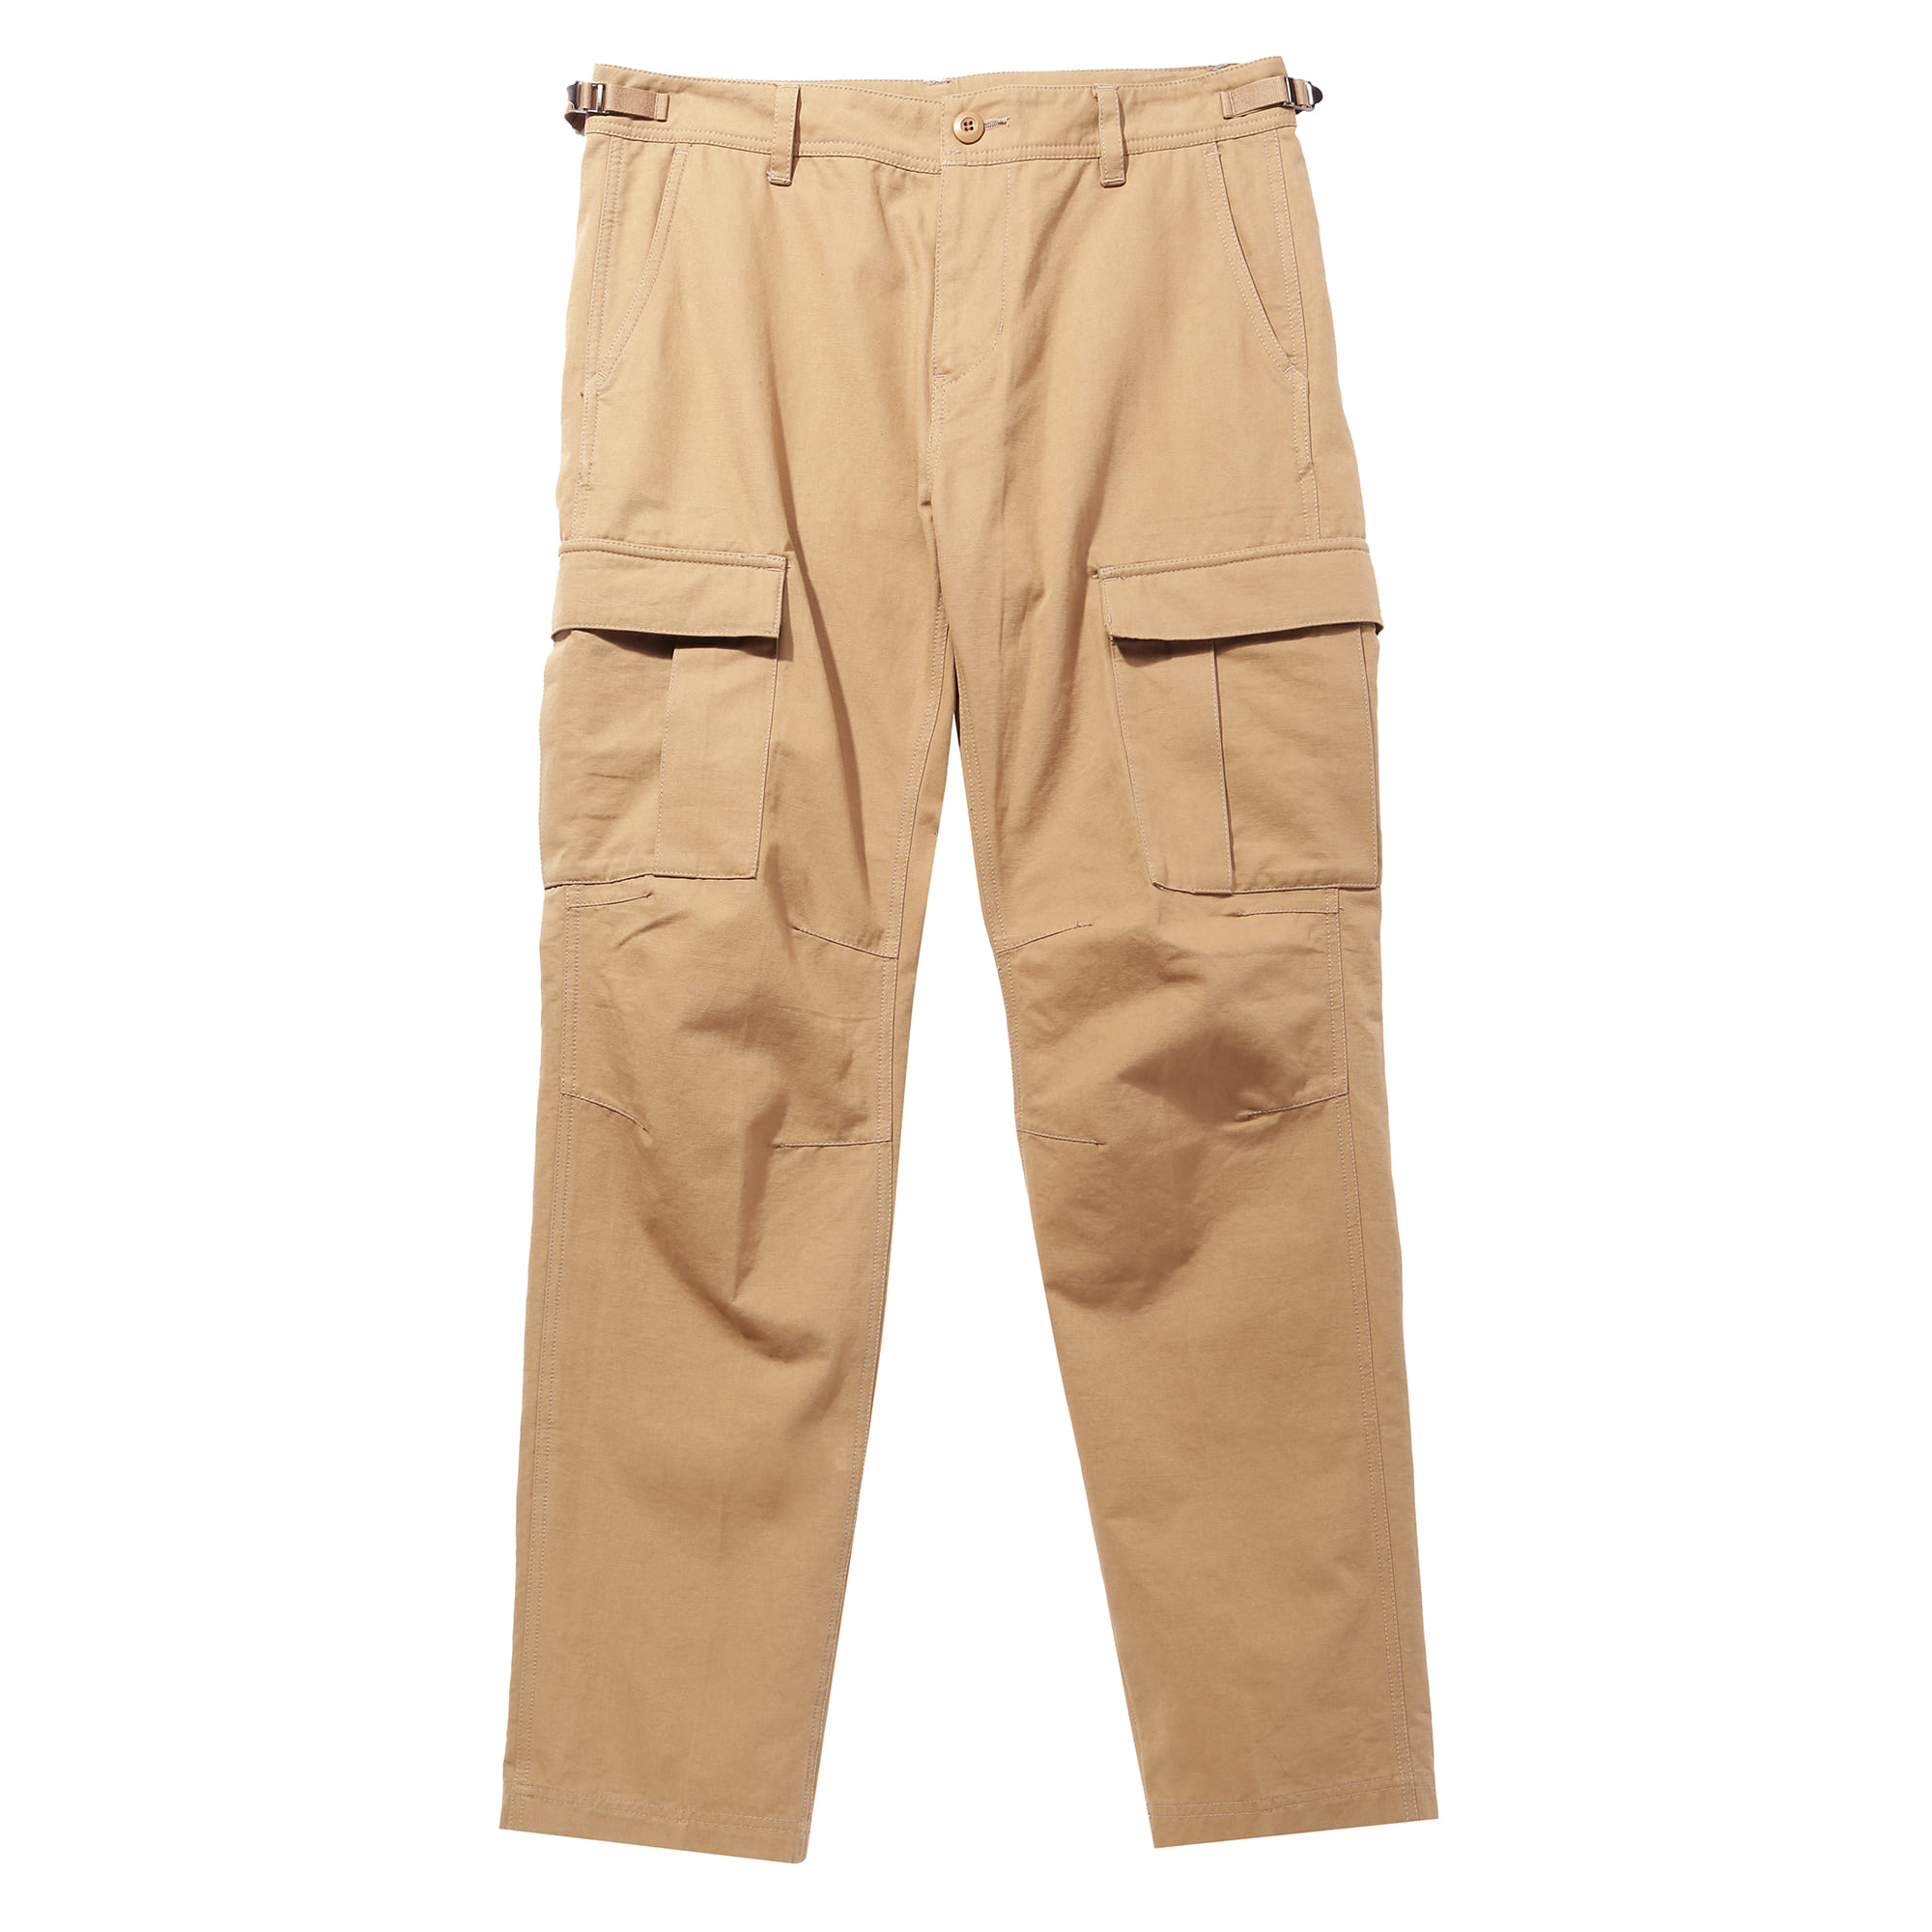 19FW MM Regular cargo pants  MYFAX4505